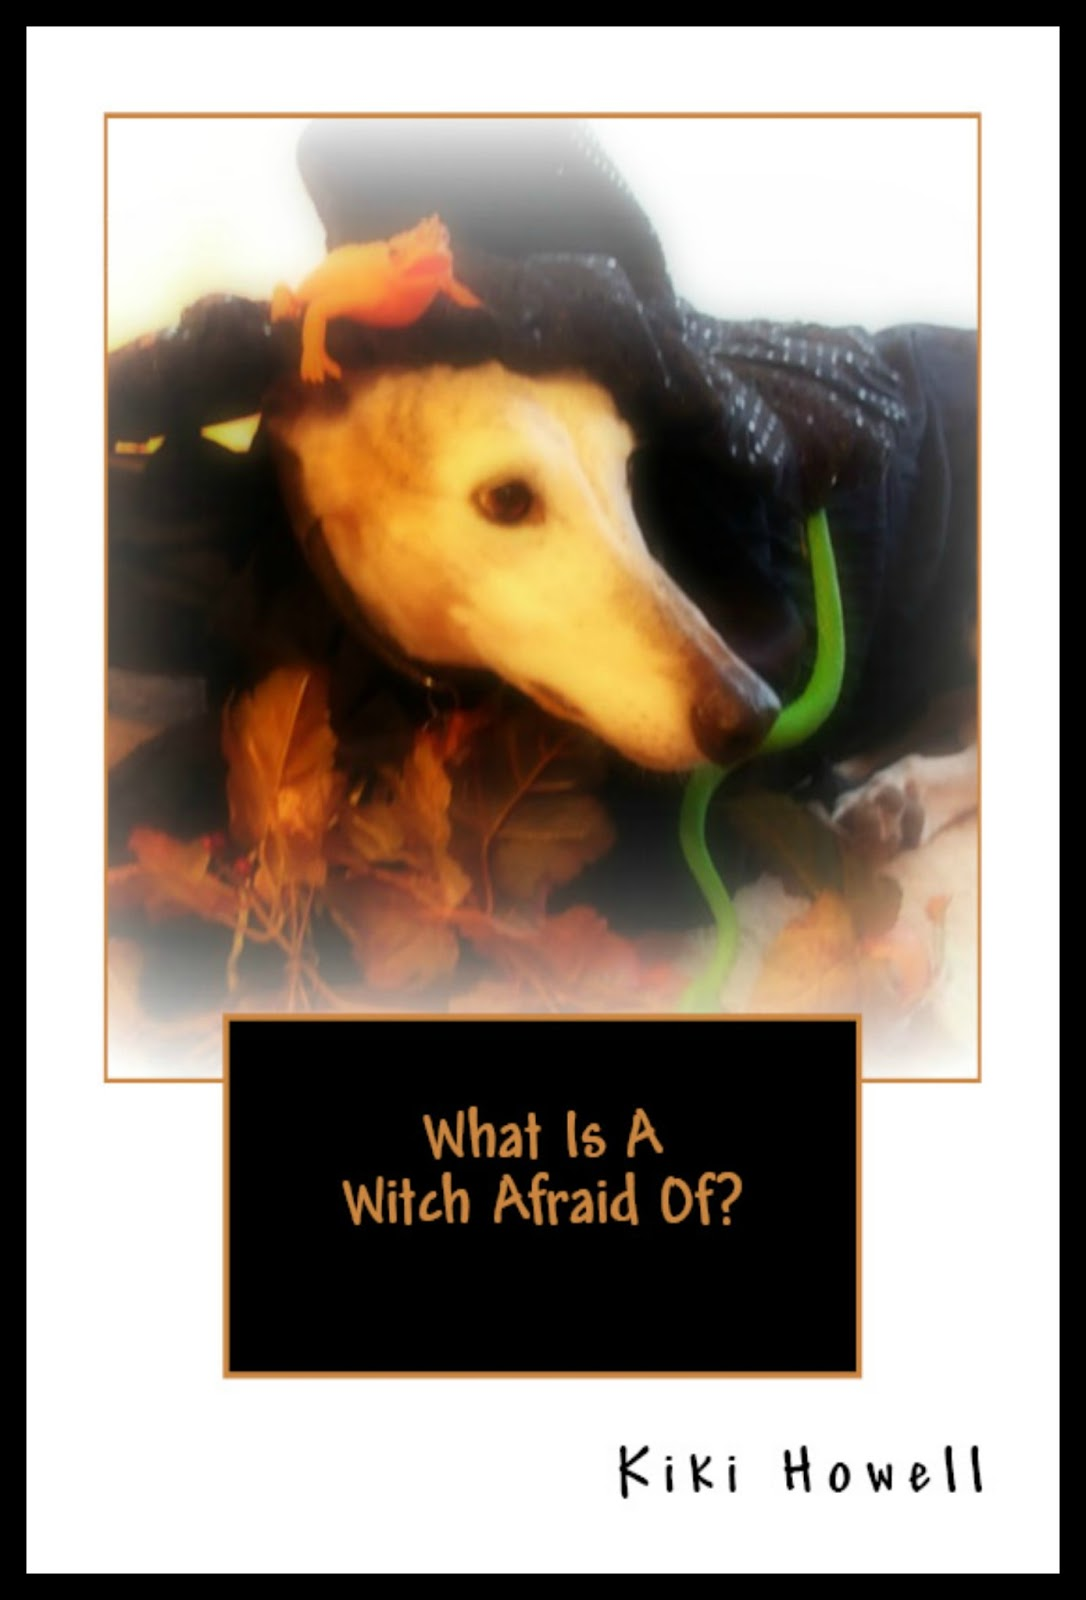 Kiki Howell: What Is A Witch Afraid Of? - A Children's